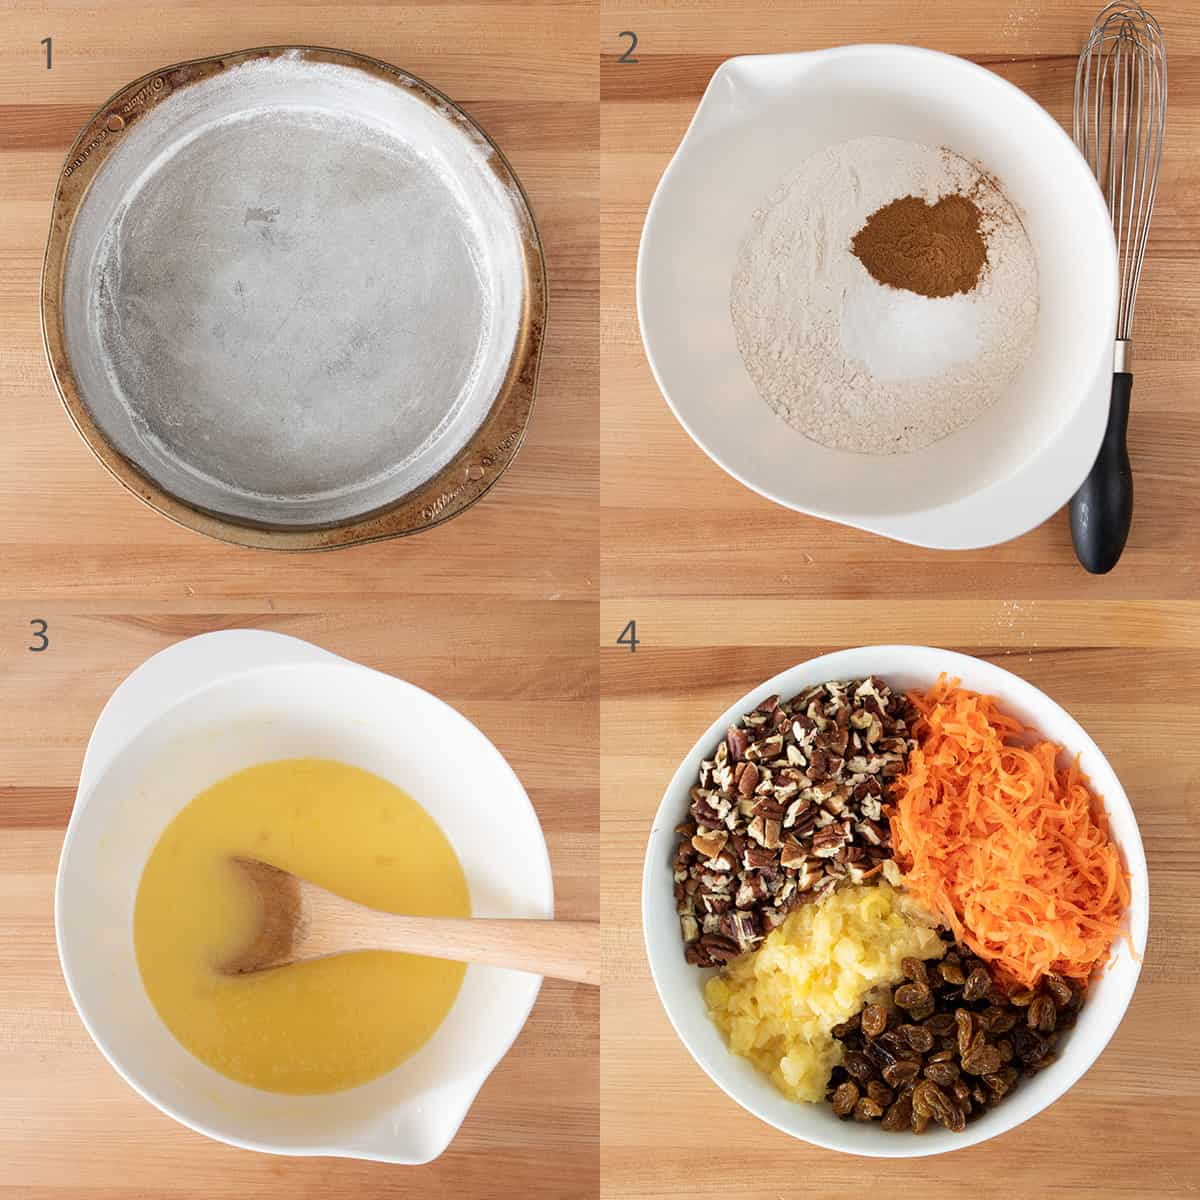 Step by step instructions including flouring a pan and mixing ingredients.